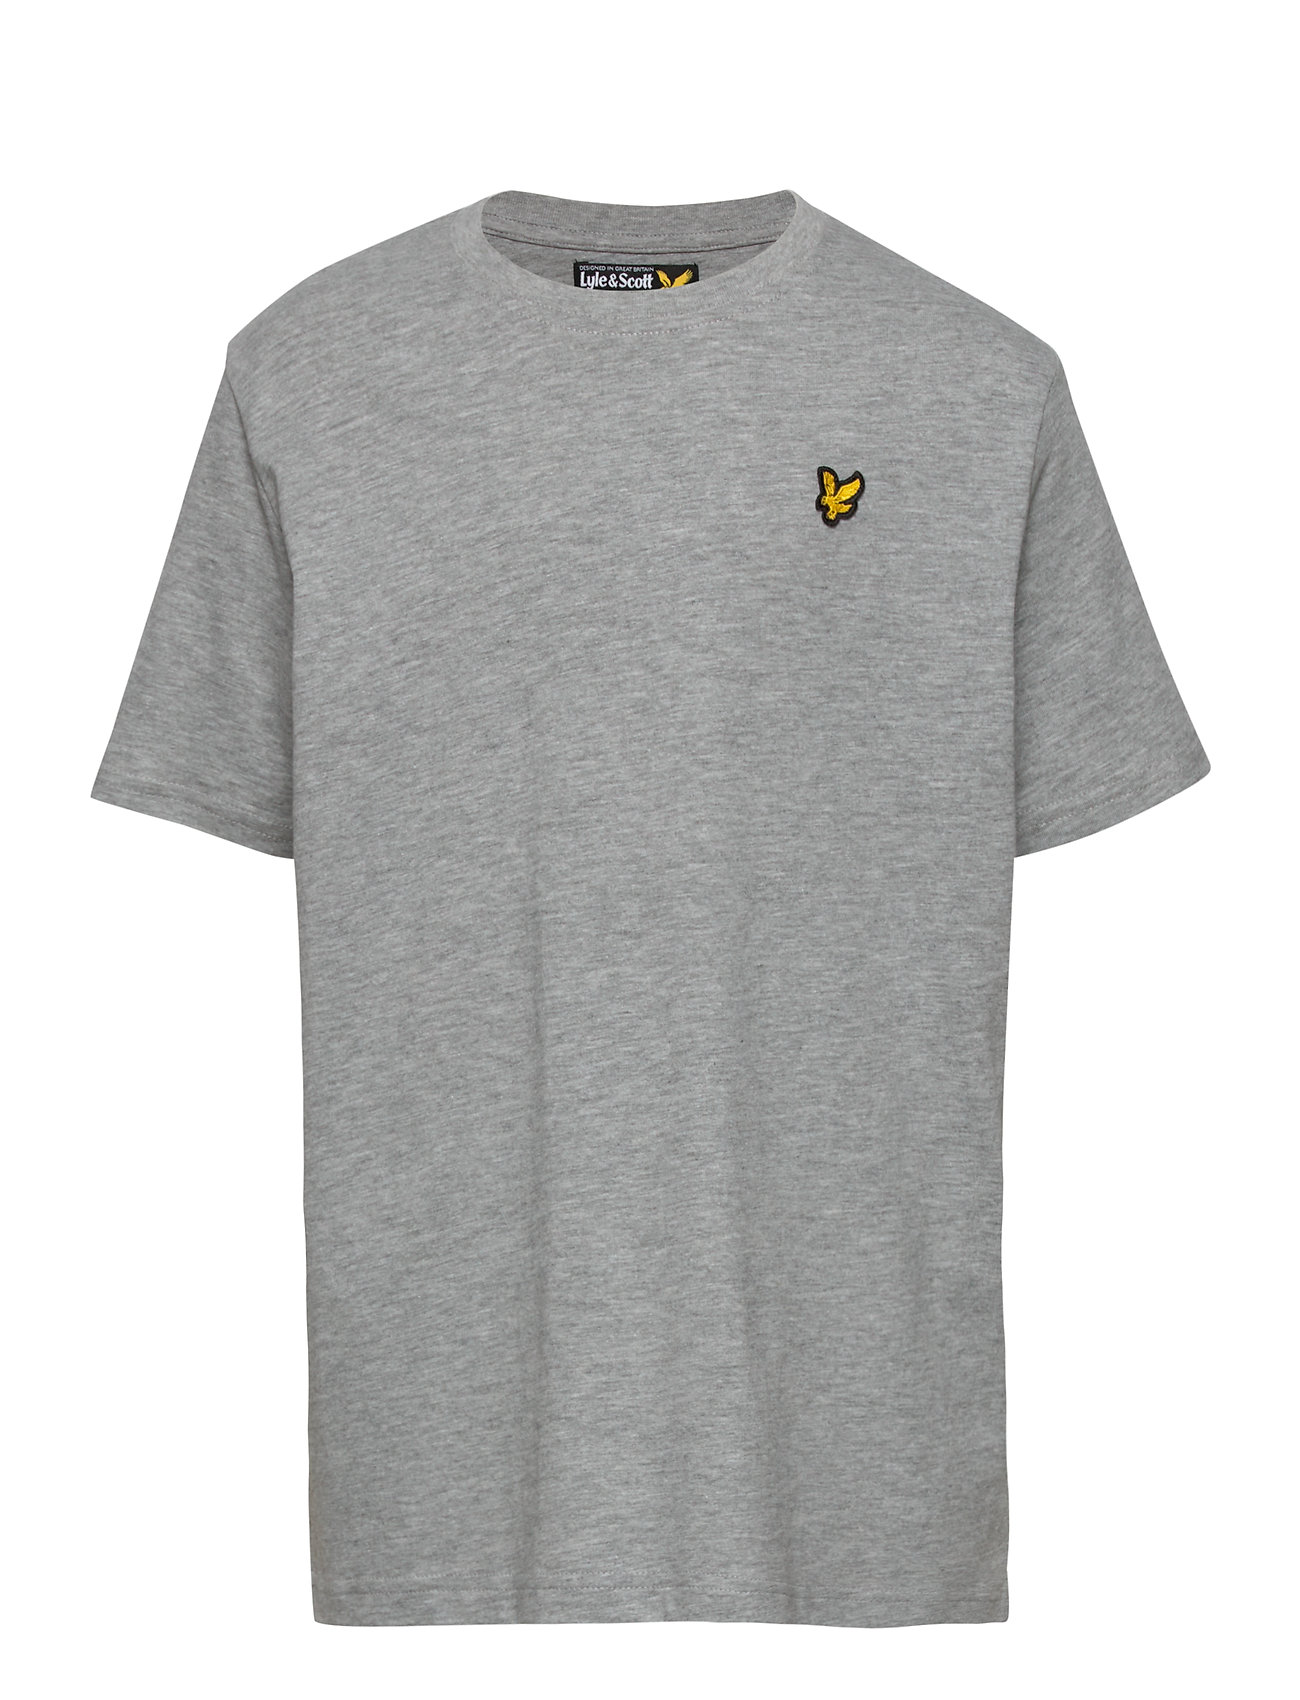 Lyle & Scott Junior Classic T-Shirt - VINTAGE GREY HEATHER